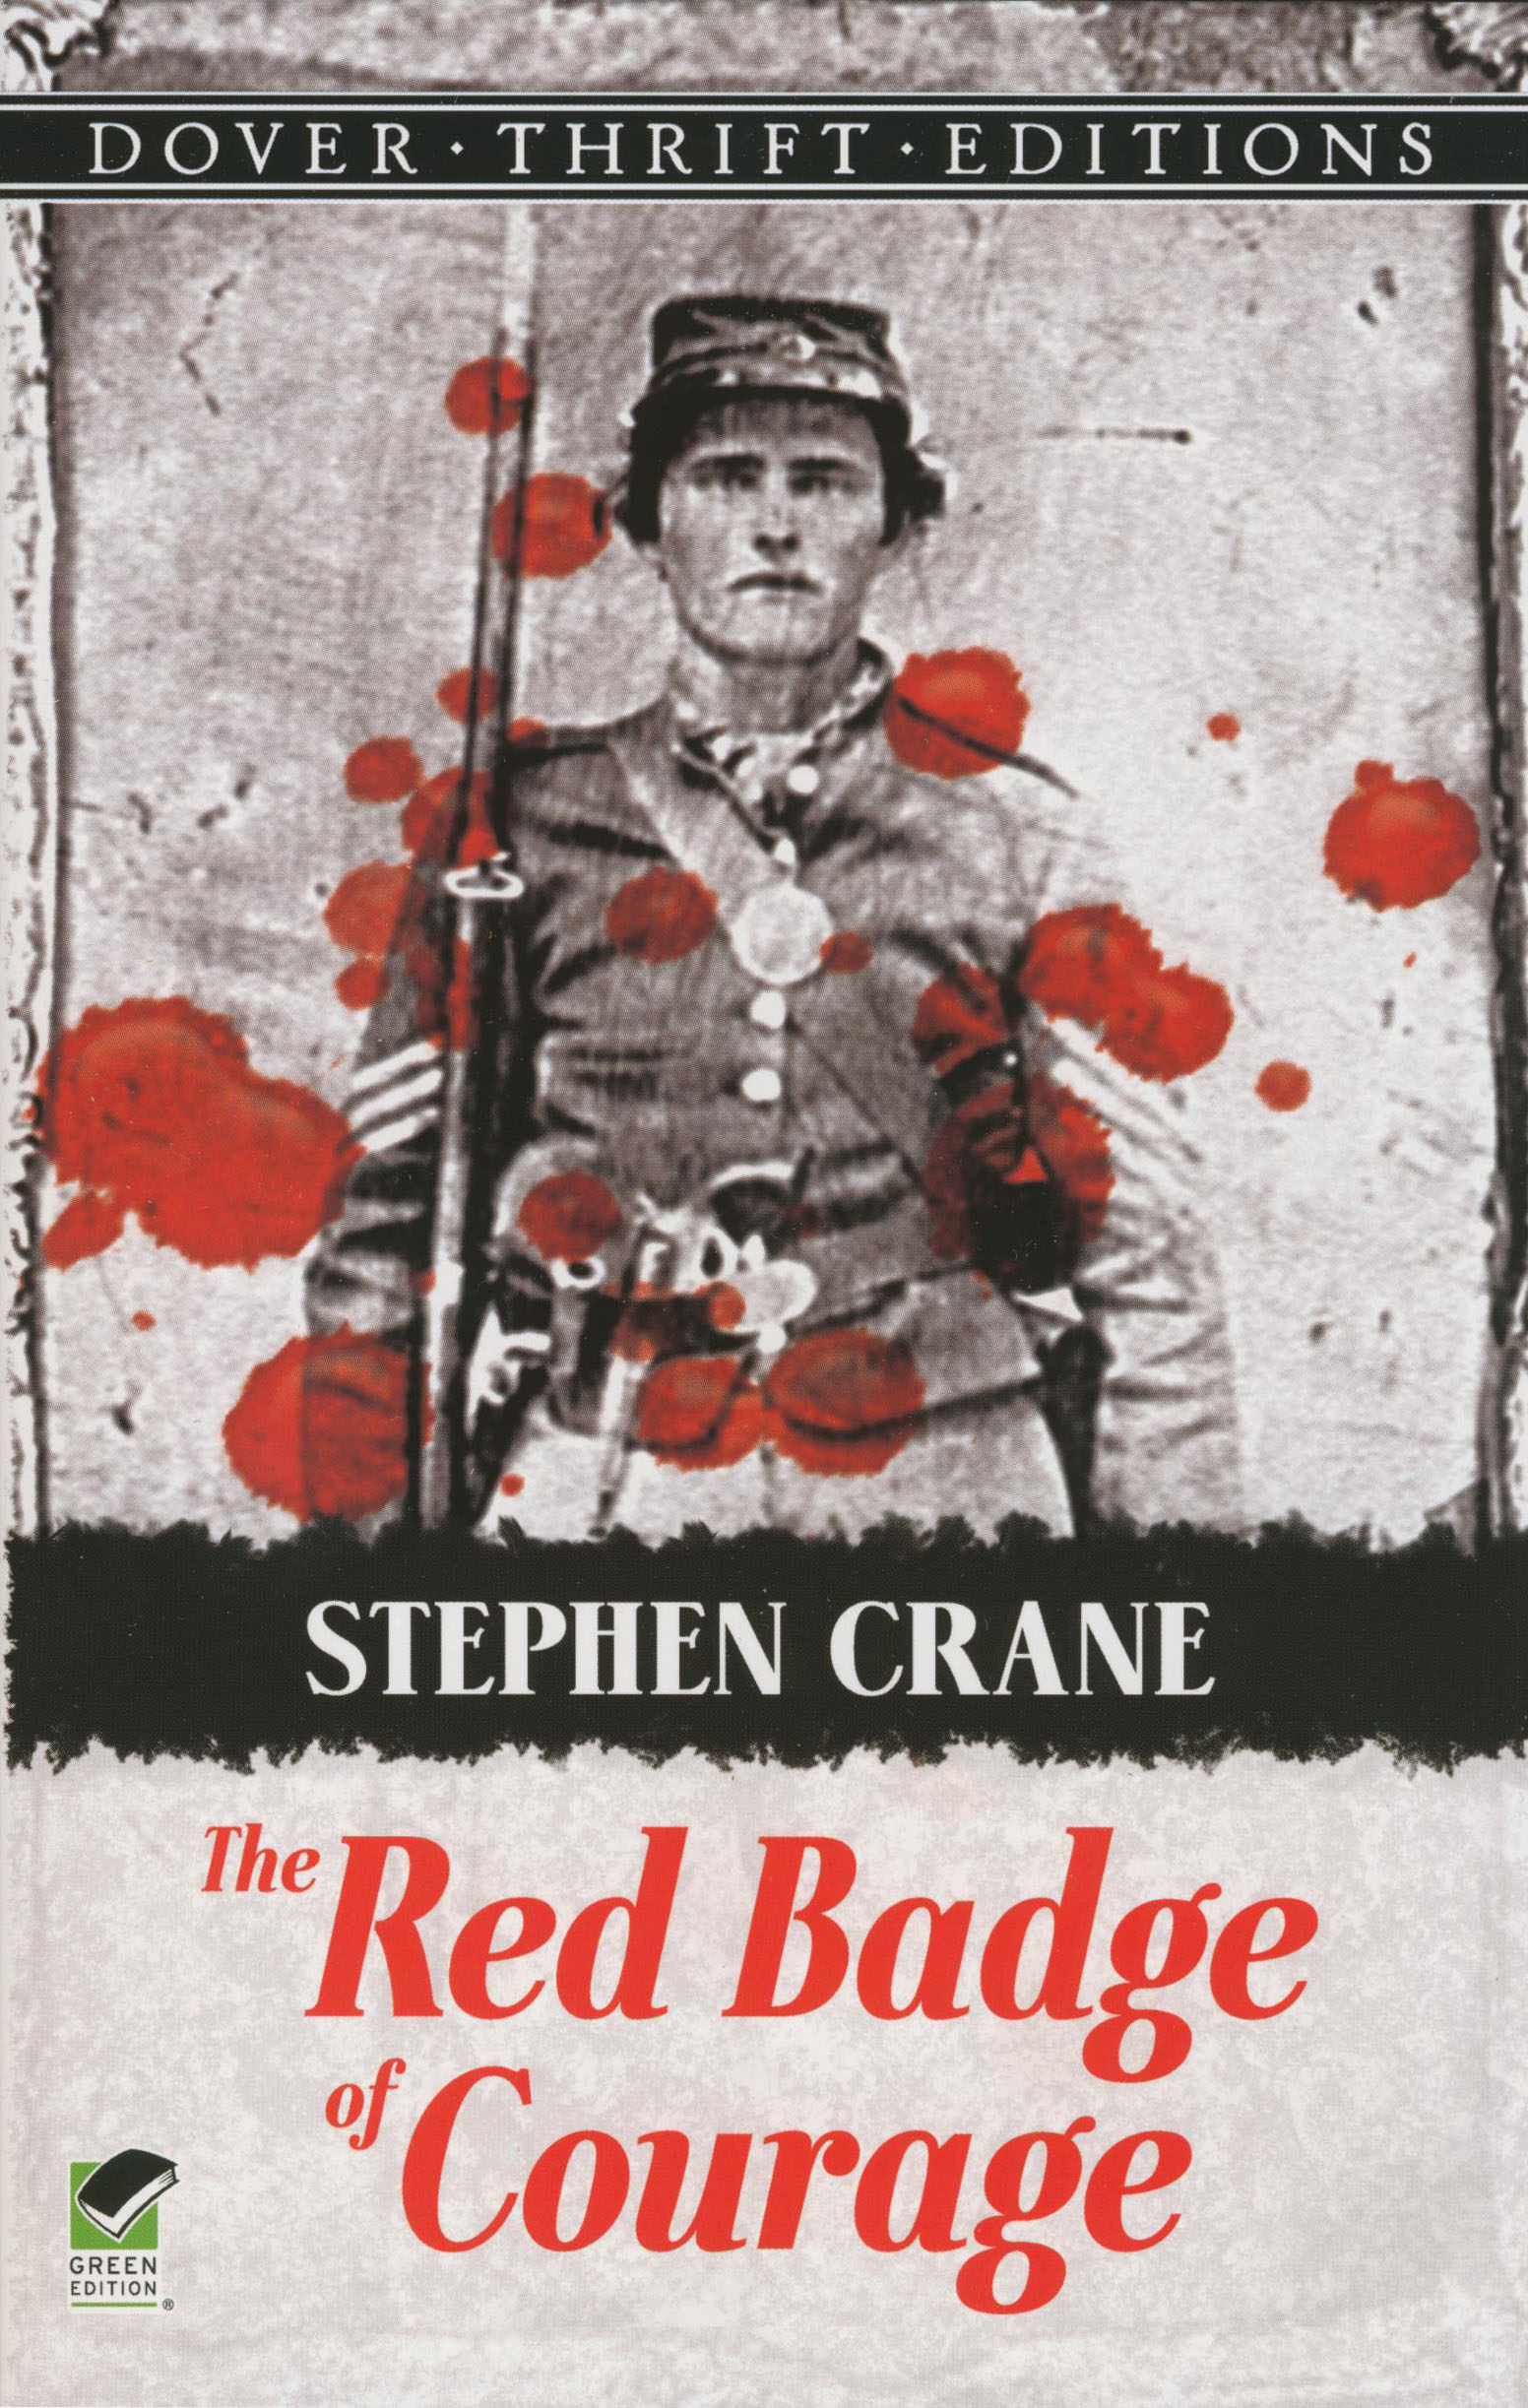 an article review on red badge of courage Brothersjuddcom reviews stephen crane's the red badge of courage - grade: b.